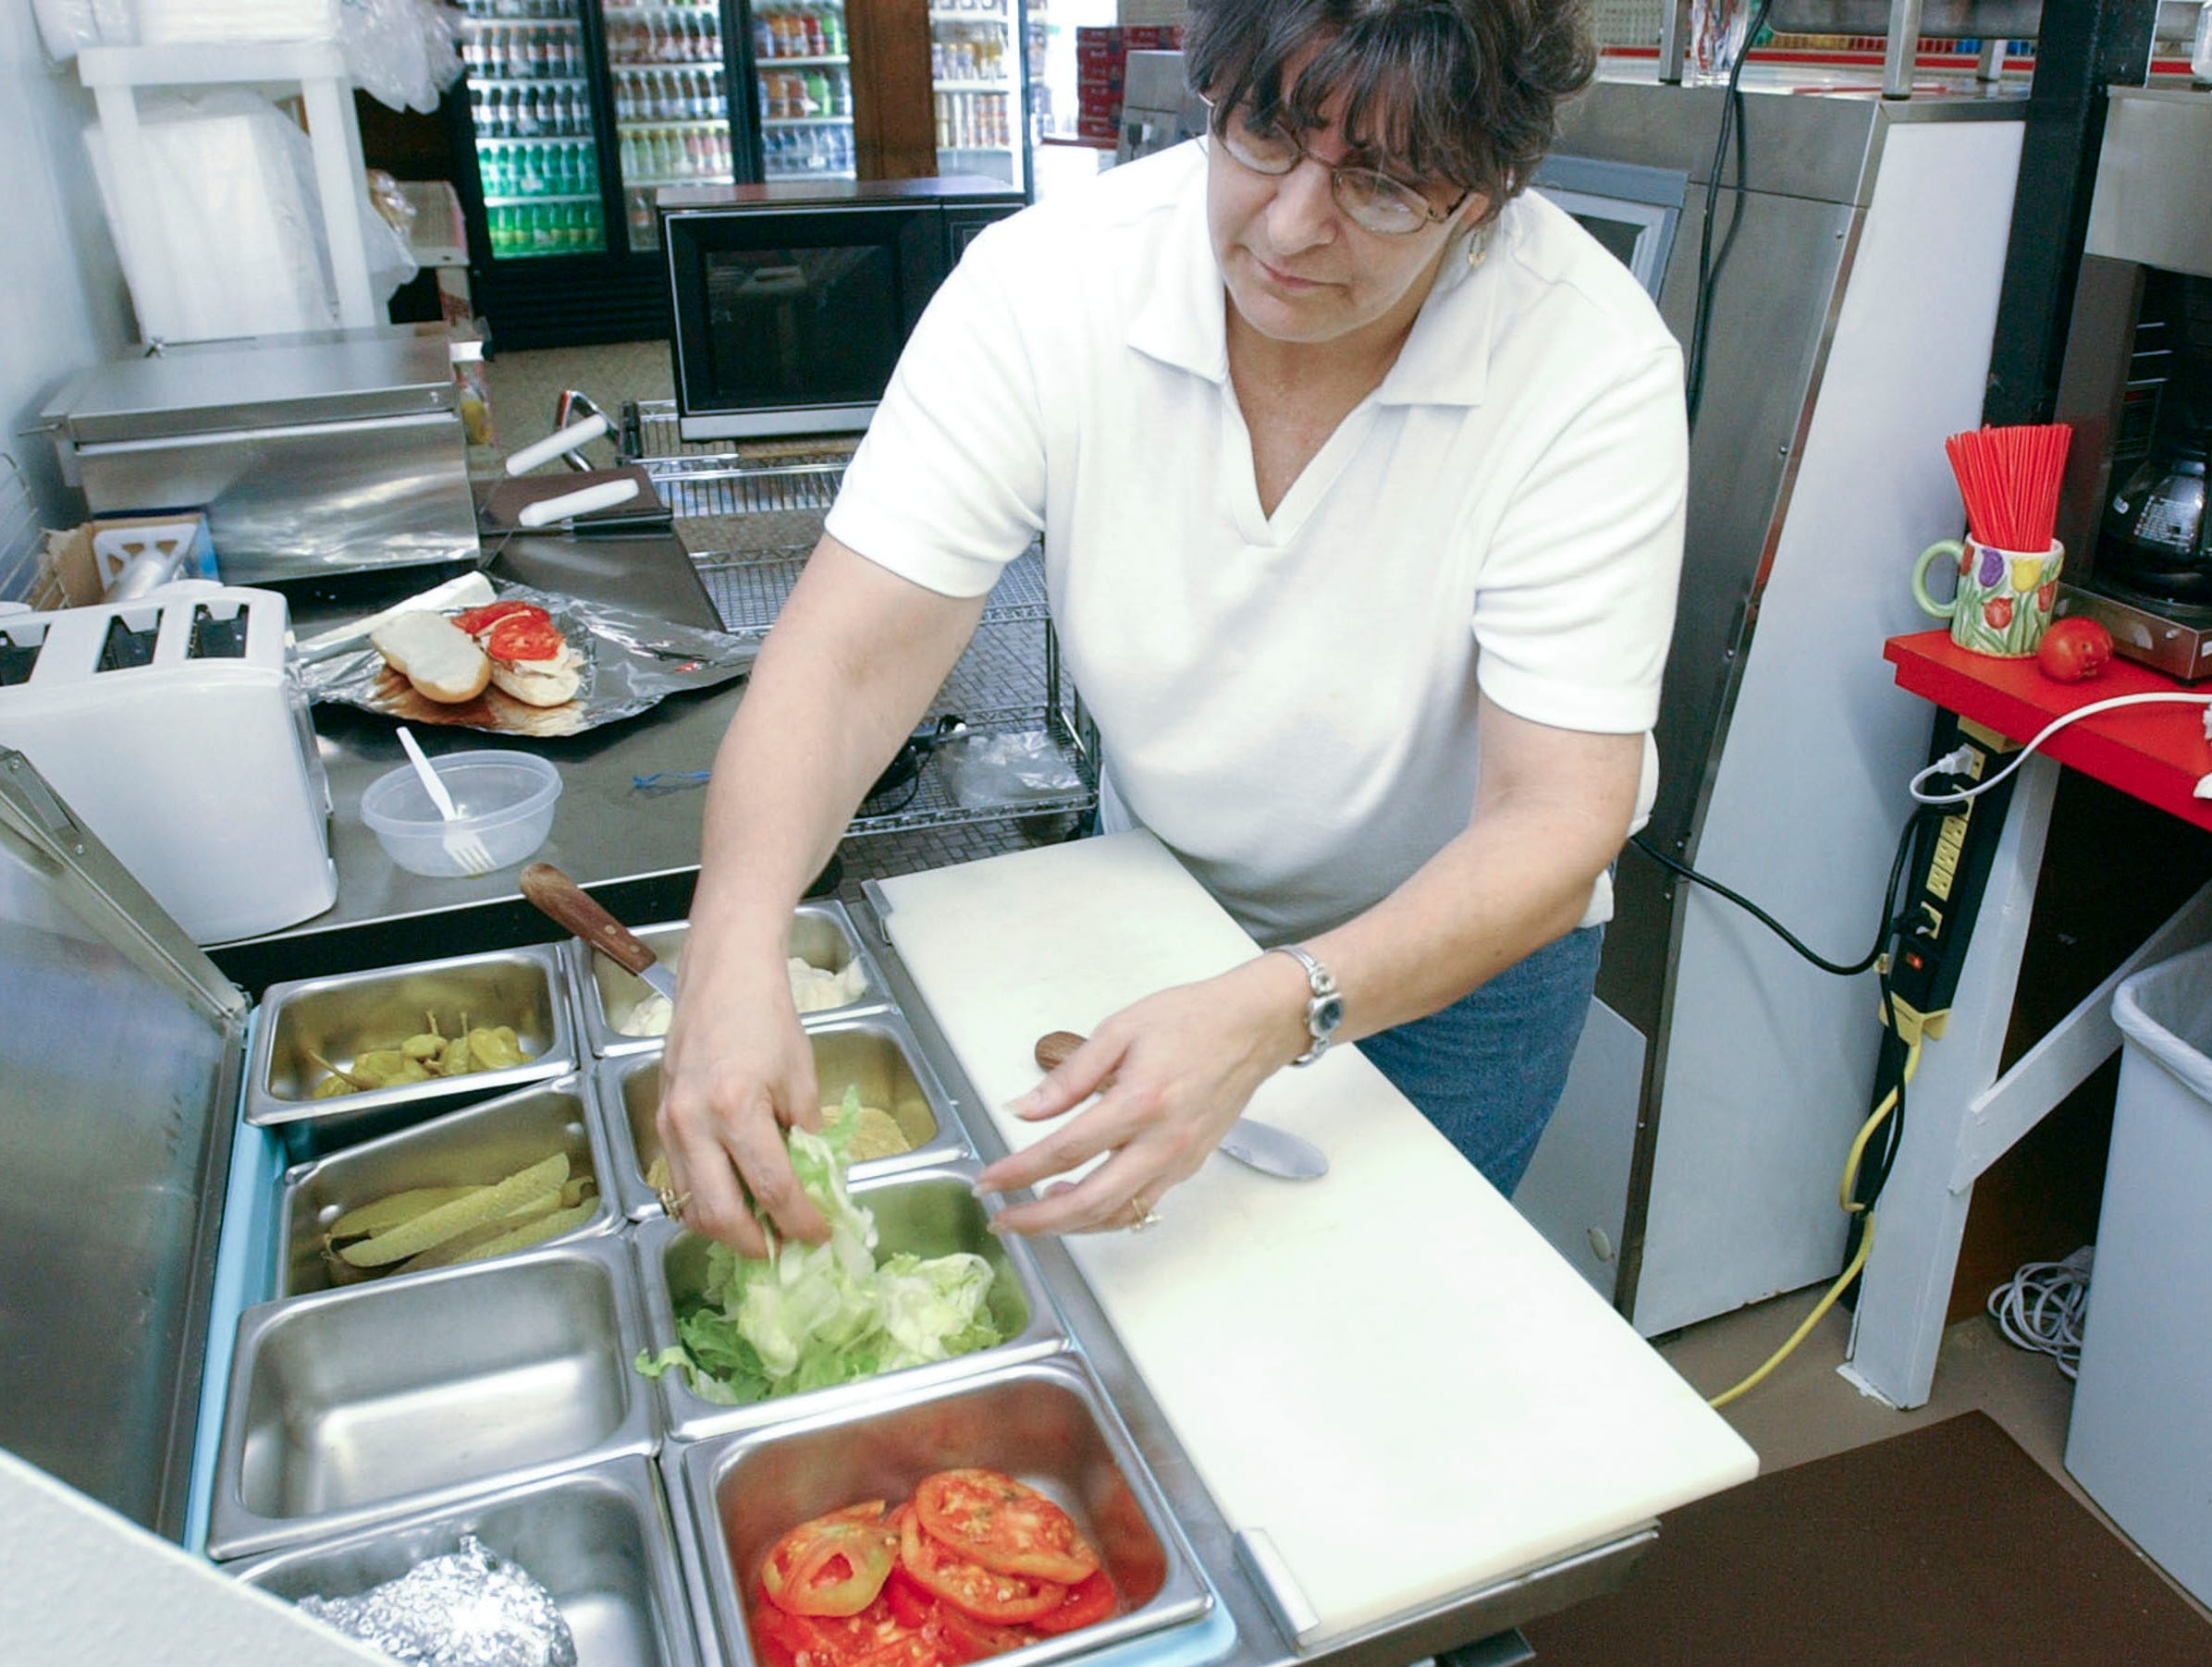 Gail Carmichael prepares a sandwich for a customer at the new North Fifth Avenue Deli and Market in 2003. The Carmichael's have completely remodeled an old bar into a market and deli.